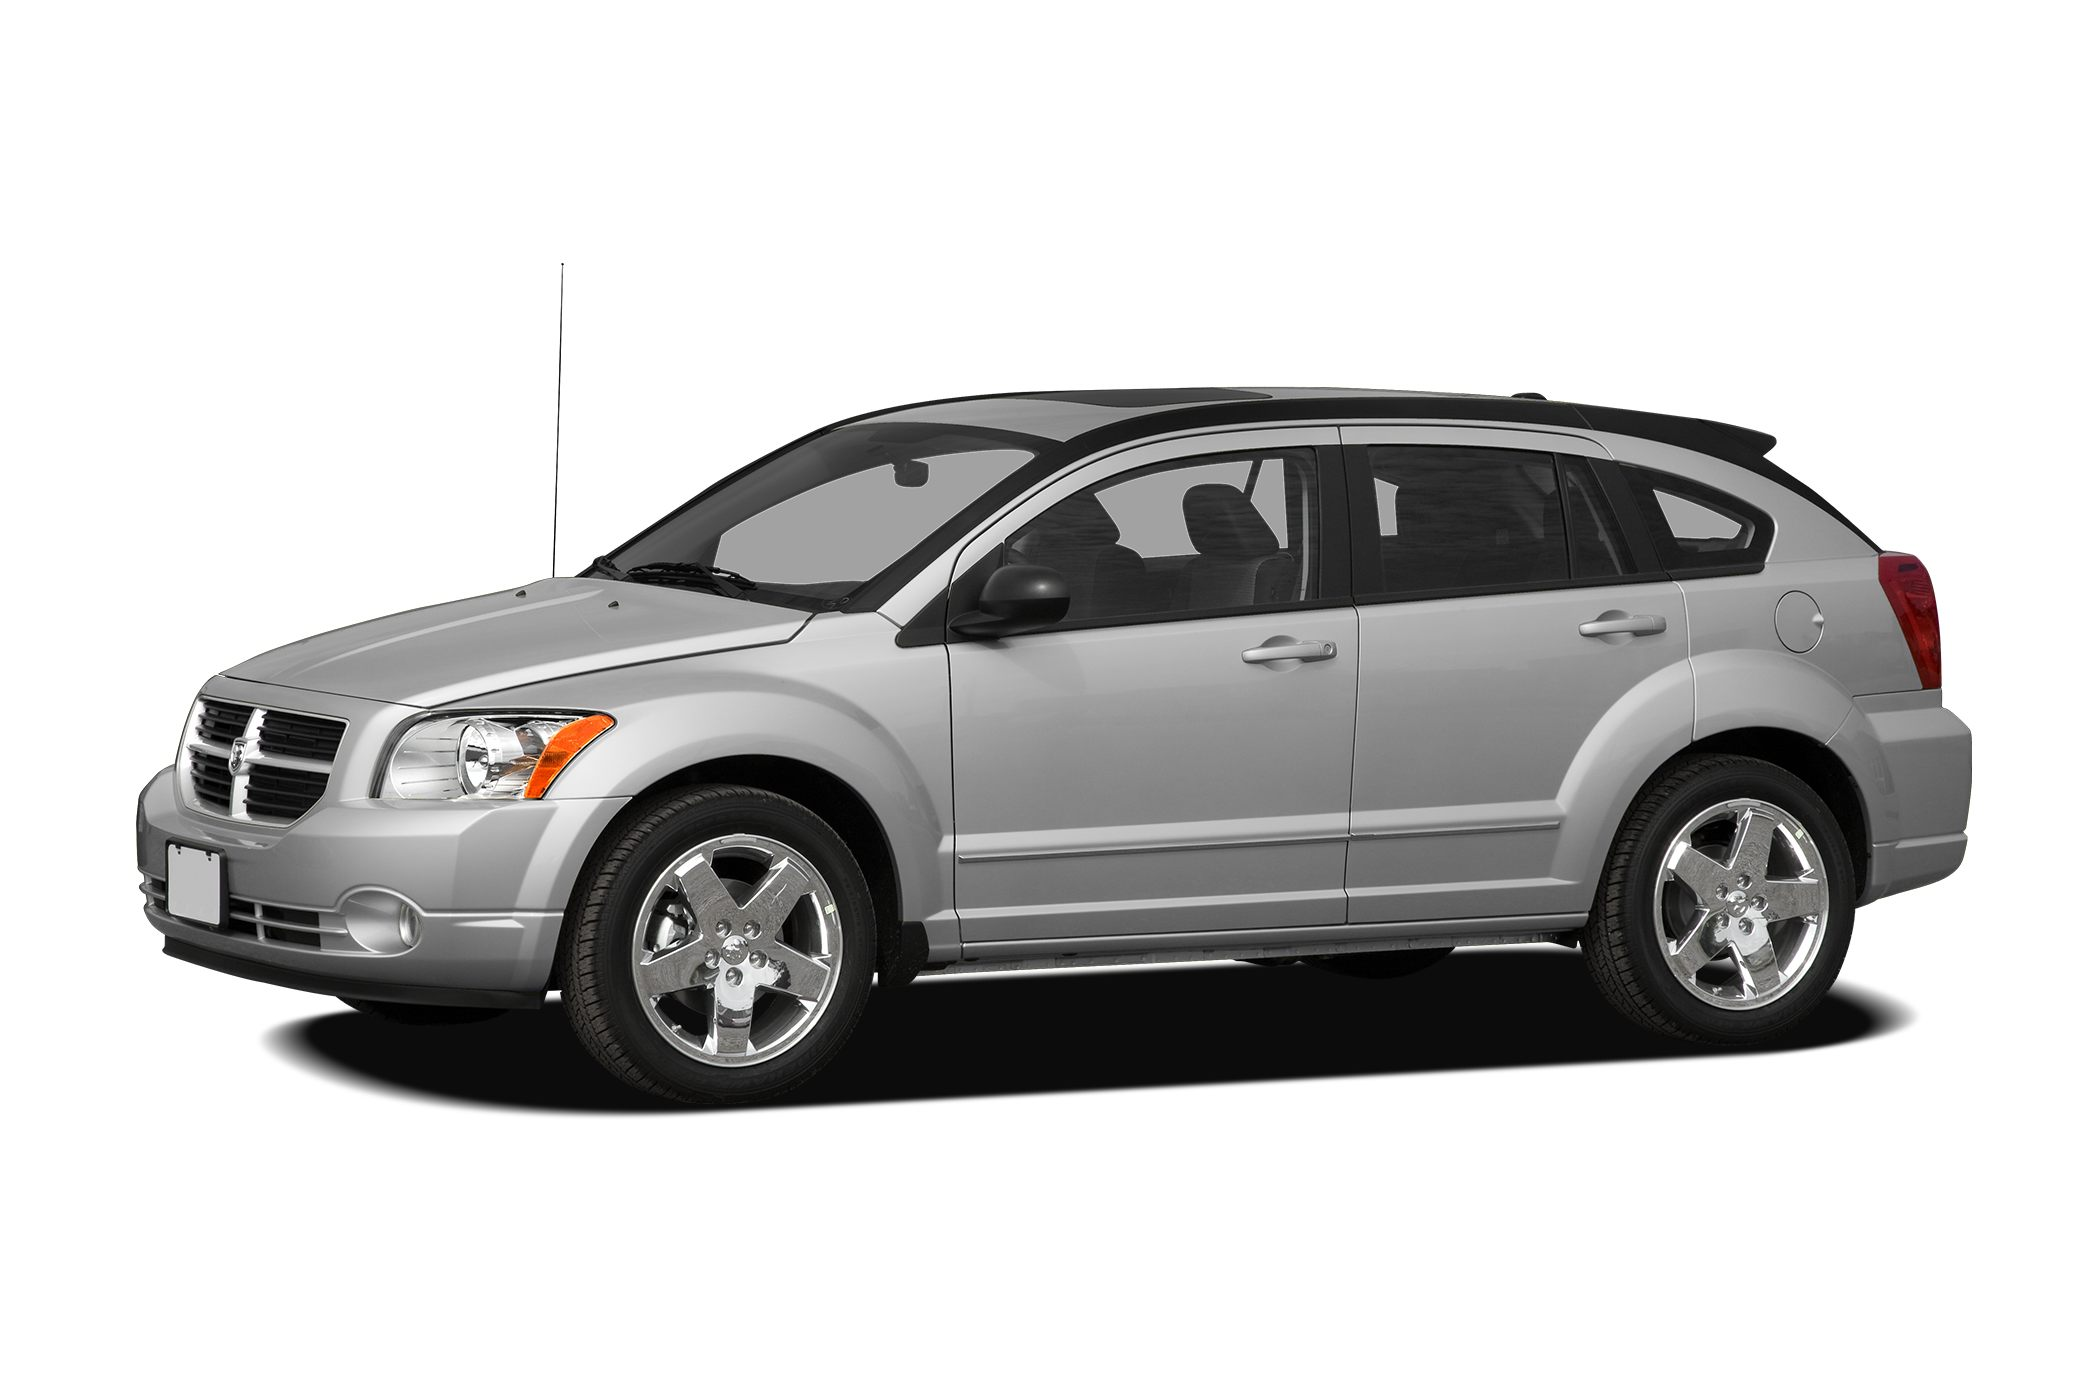 2011 Dodge Caliber Mainstreet  WHEN IT COMES TO EXCELLENCE IN USED CAR SALES YOU KNOW YOURE A